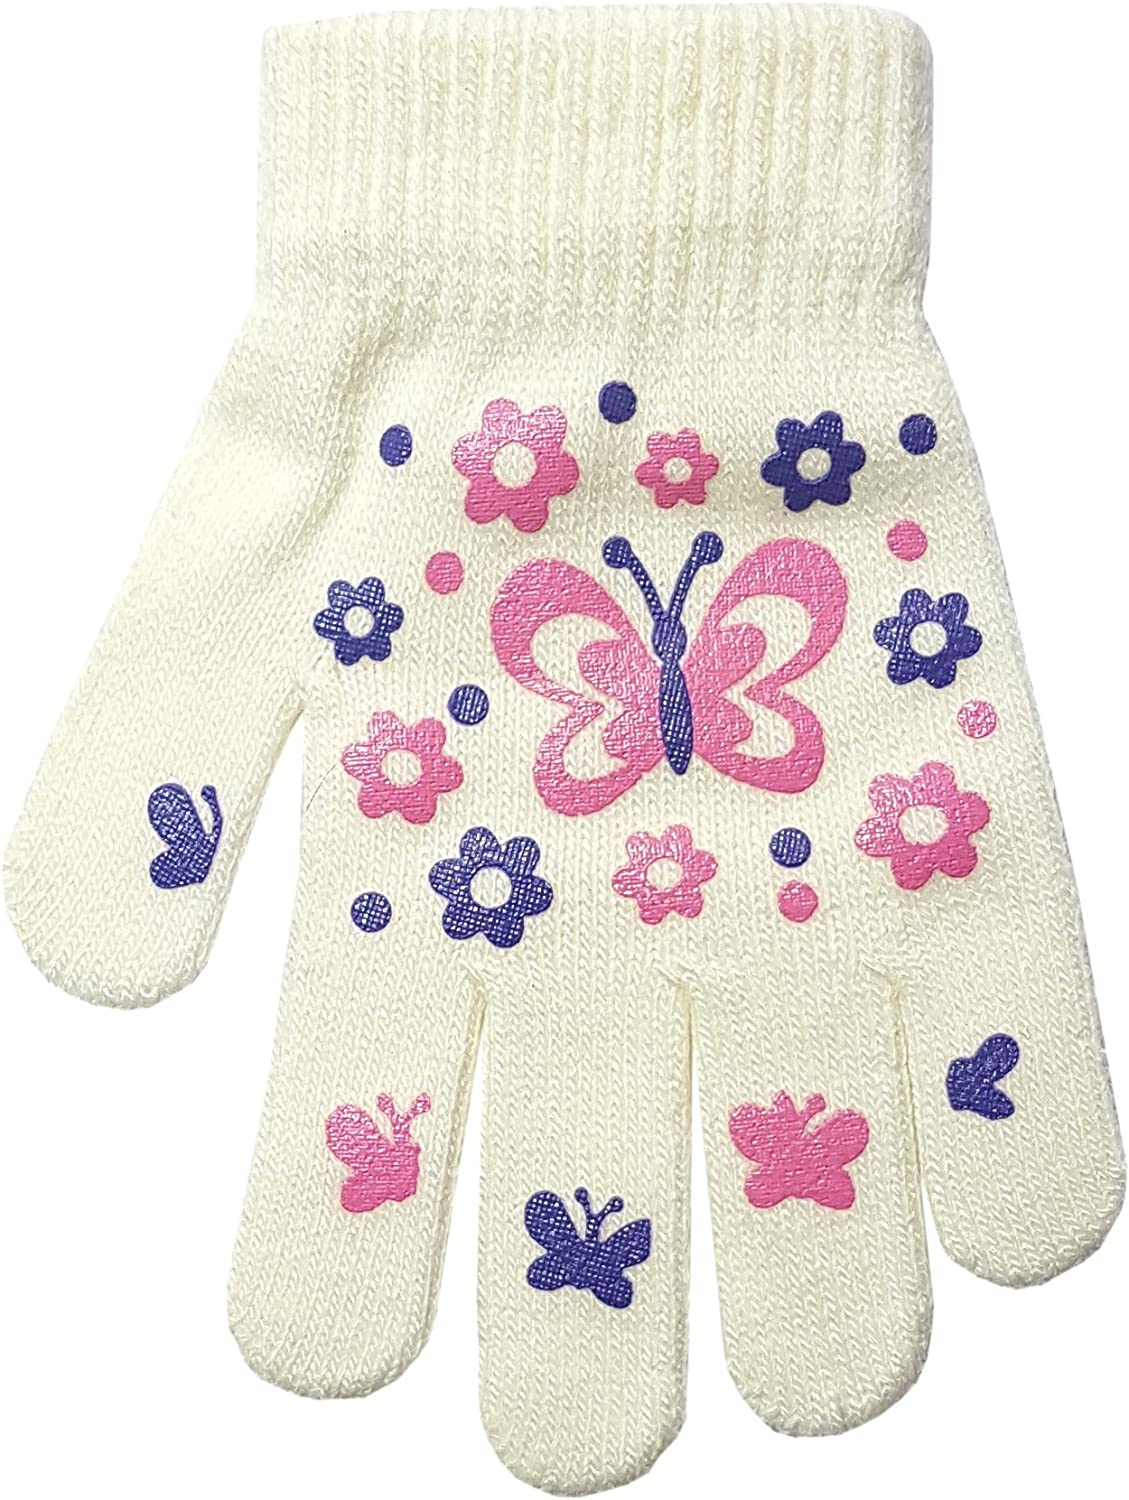 Childrens Heart and Butterfly Design Magic Gripper Gloves